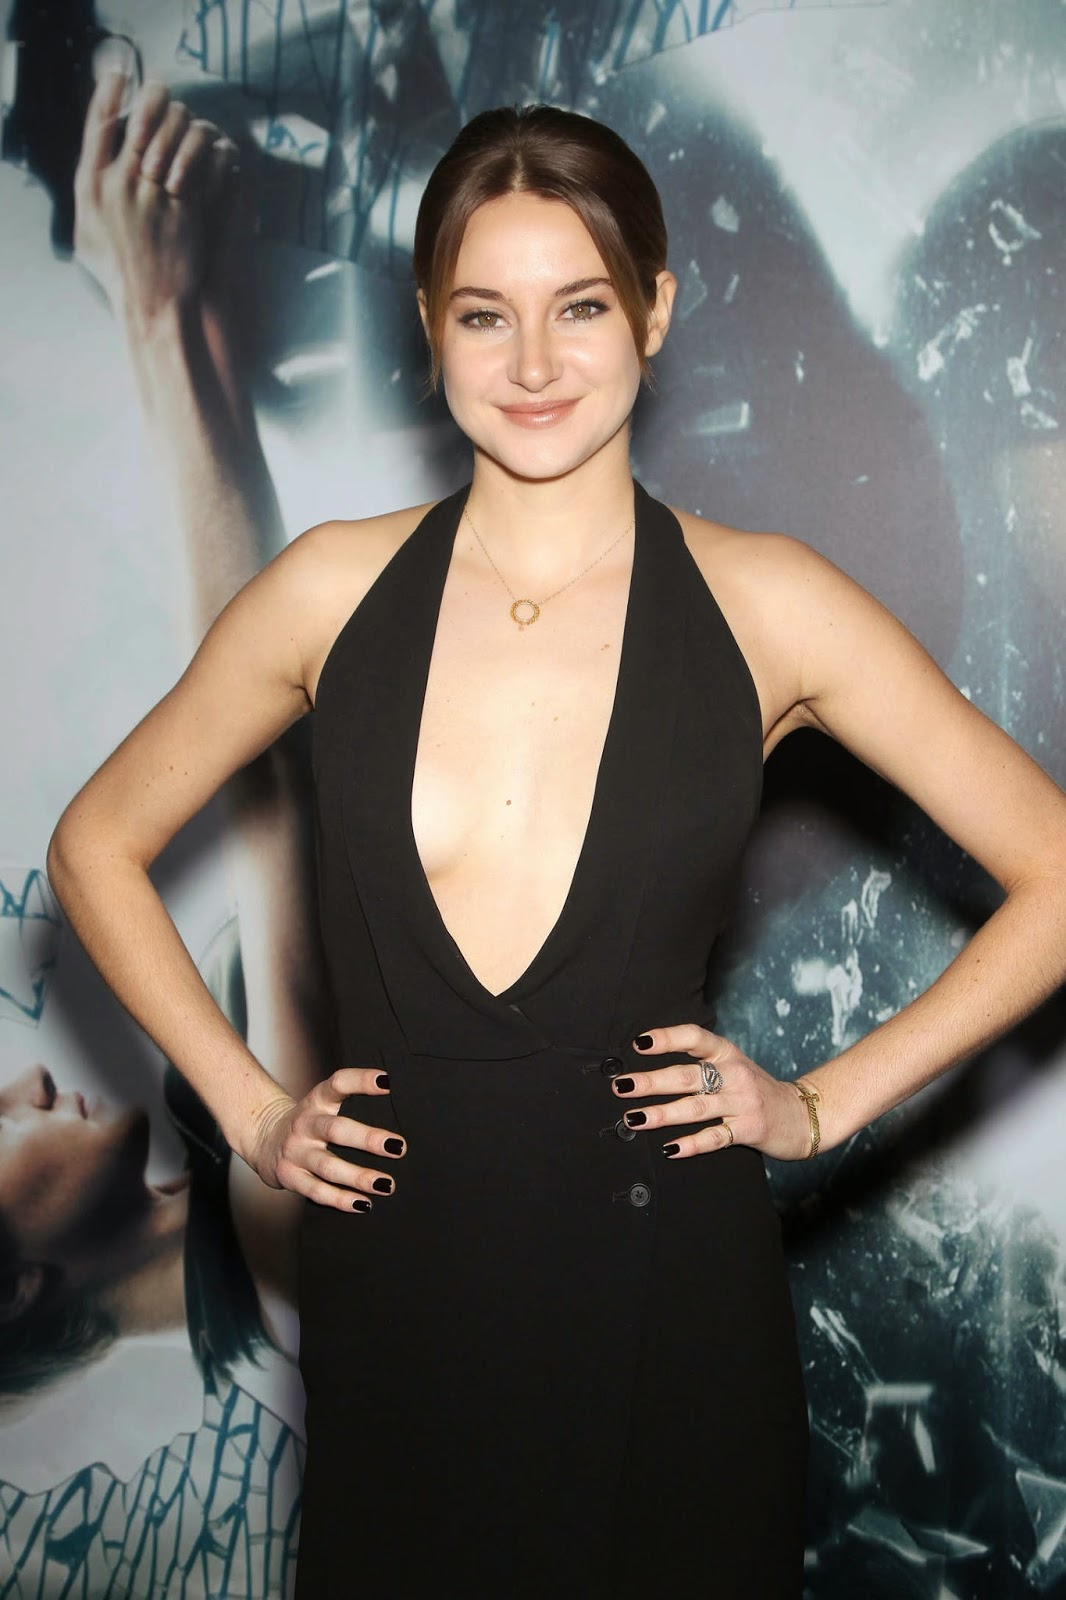 Shailene Woodley wears a plunging black dress to the 'Insurgent' NY premiere